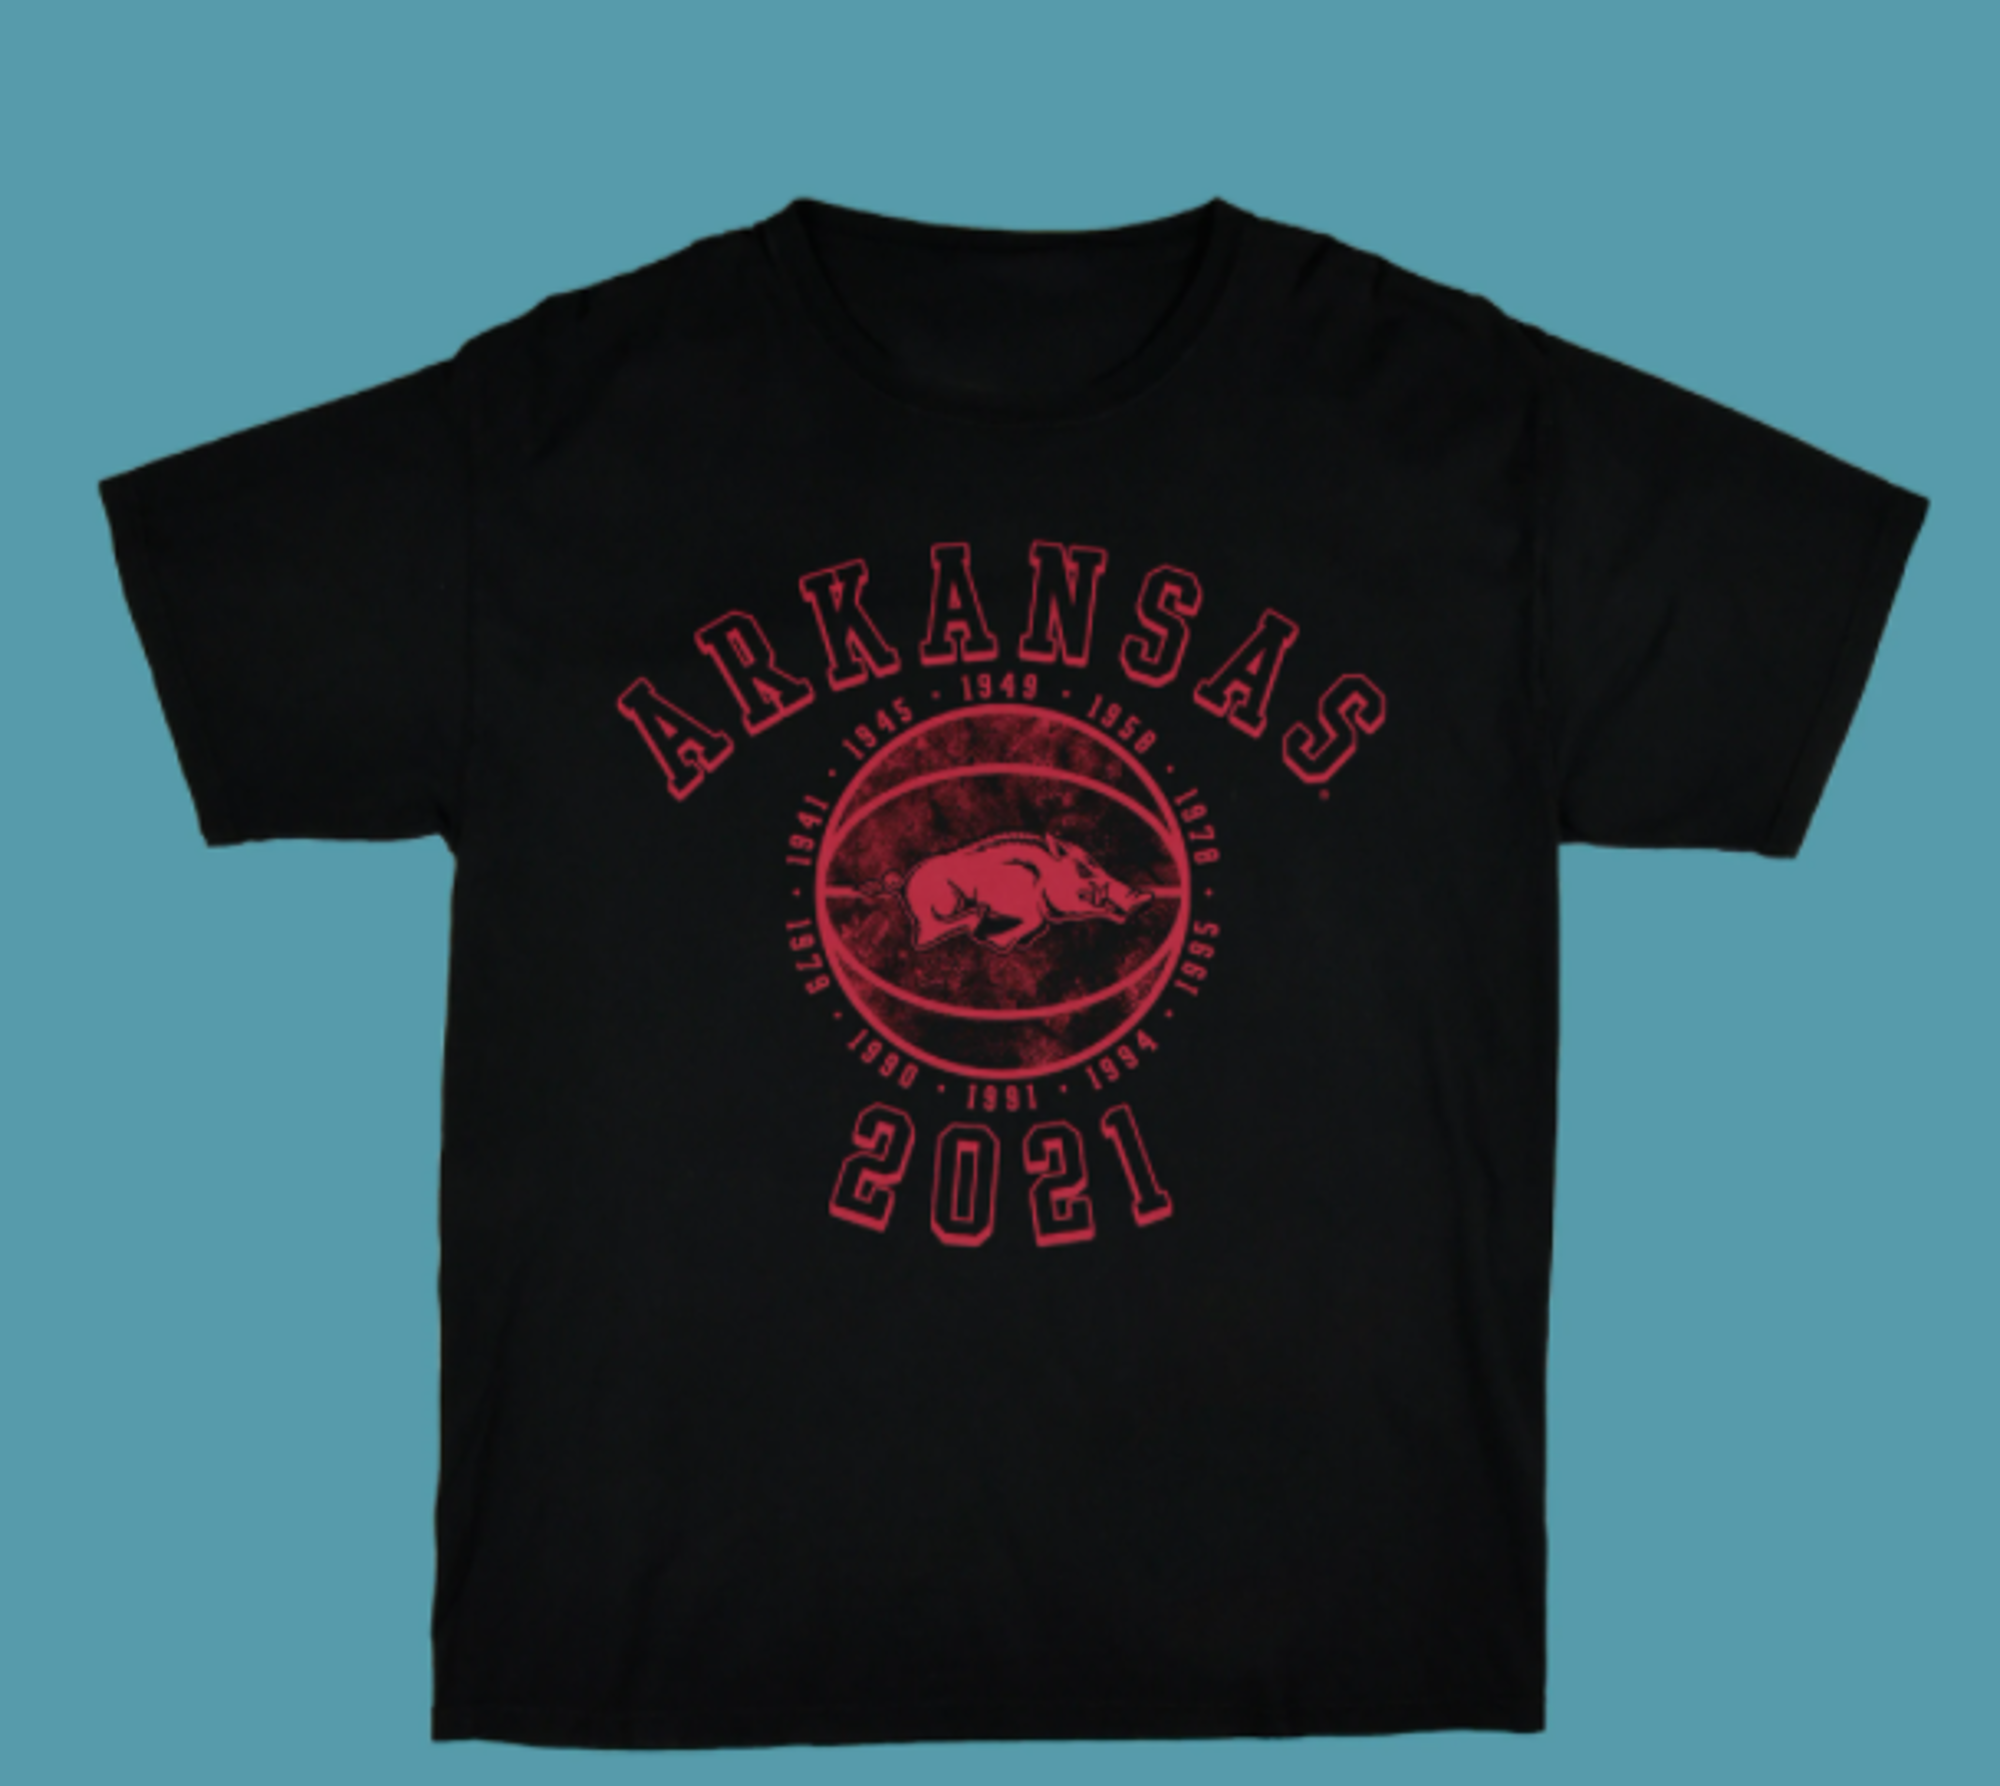 Image for Arkansas Razorbacks Elite 8 2021 Tee- Black